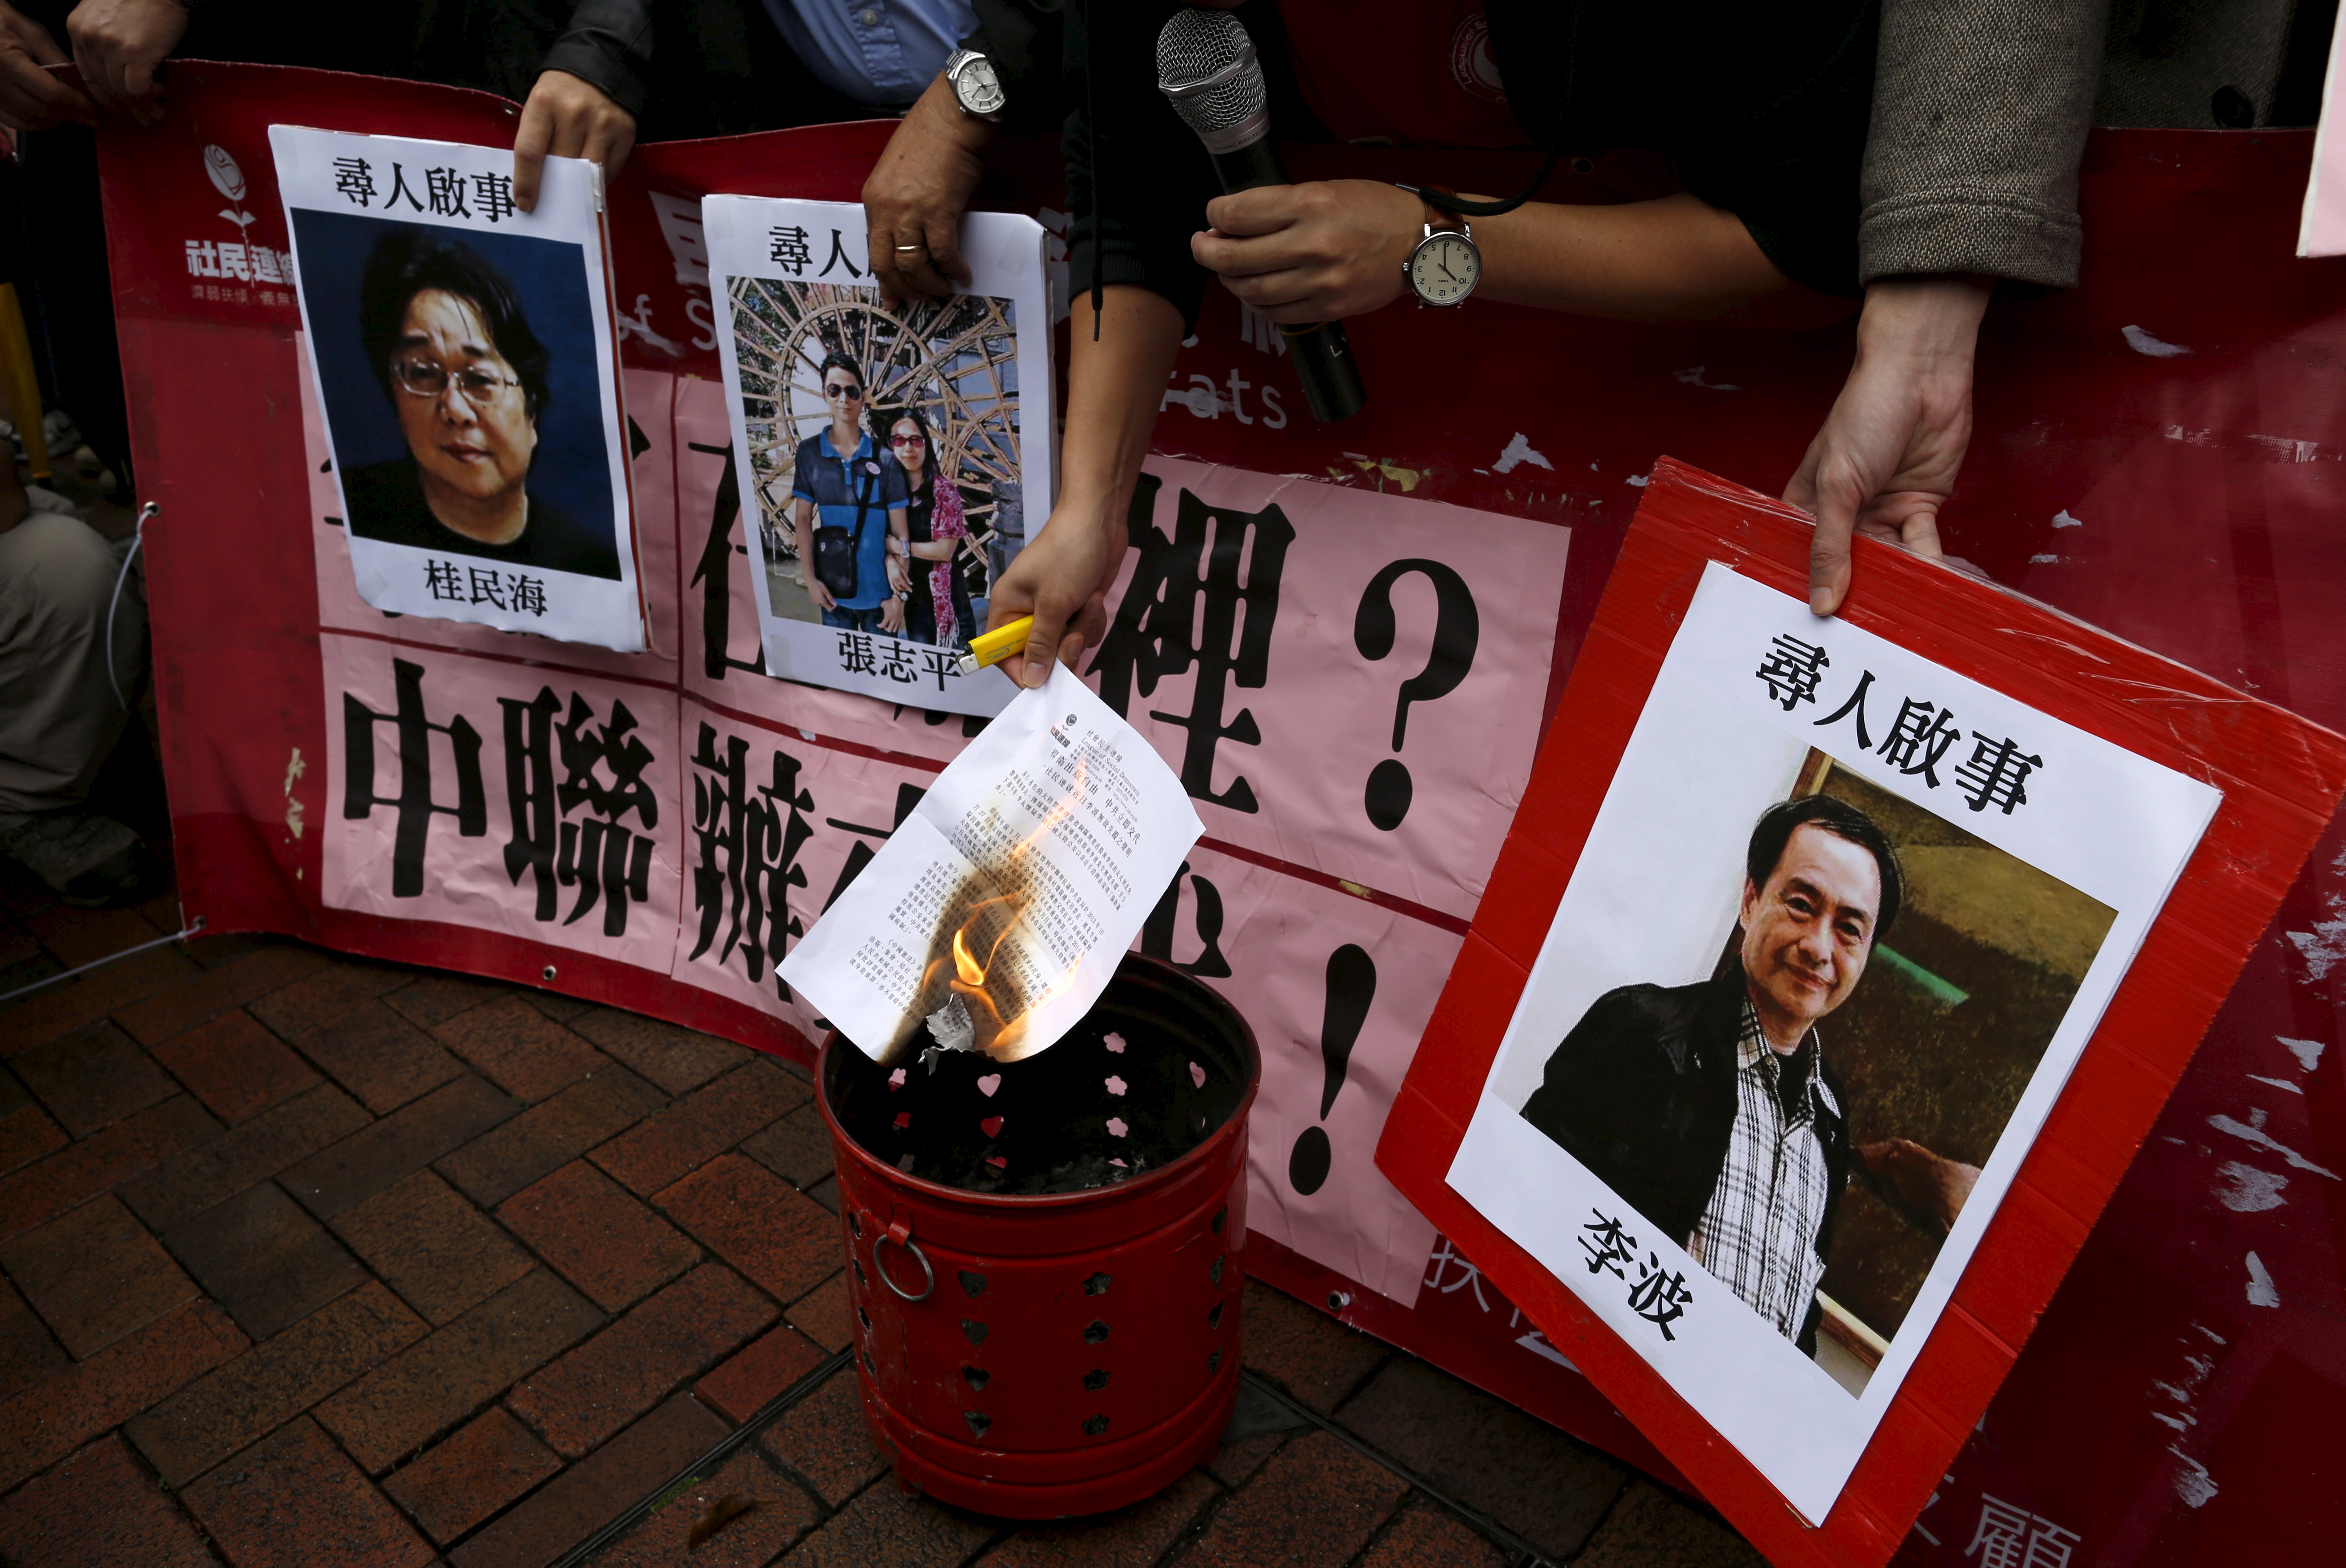 A pro-democracy demonstrator burns a letter next to pictures of missing staff members of a publishing house and a bookstore, including Gui Minhai, a China-born Swedish national who is the owner of Mighty Current,  Cheung Jiping, the business manager of the publishing house and Causeway Bay Books shareholder Lee Bo (L-R), during a protest to call for an investigation behind their disappearance, outside the Chinese liaison office in Hong Kong, China January 3, 2016. Hong Kong opposition lawmakers protested on Sunday outside Beijing's representative office in the Chinese-ruled city over the disappearance of a bookseller who specializes in publications critical of the Communist Party government. REUTERS/Tyrone Siu - RTX20UEE